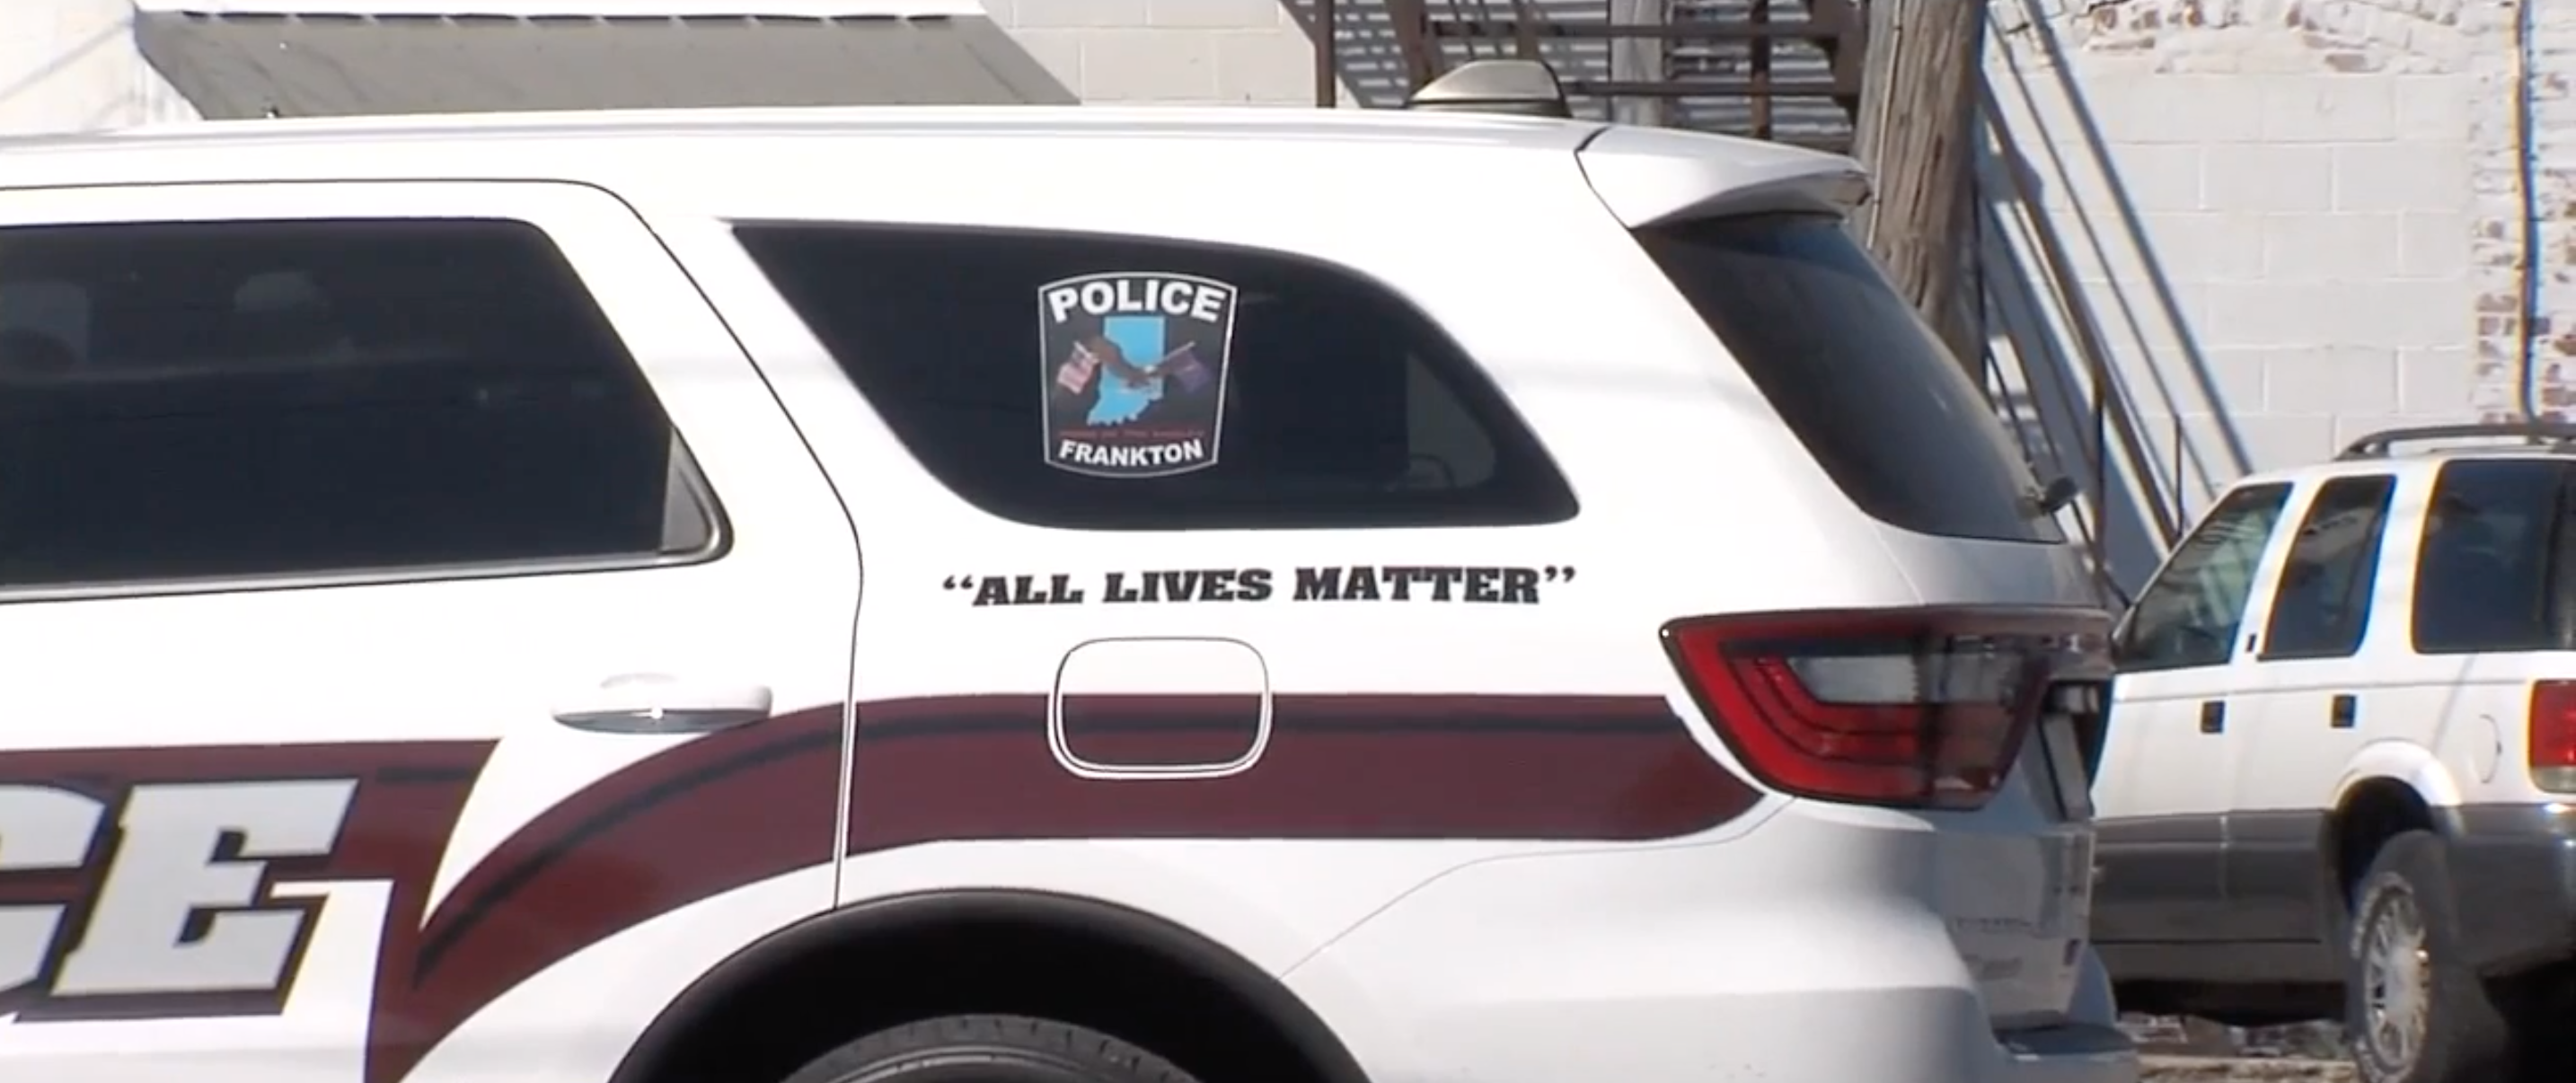 Town vows to remove 'All Lives Matter' decals from police vehicles